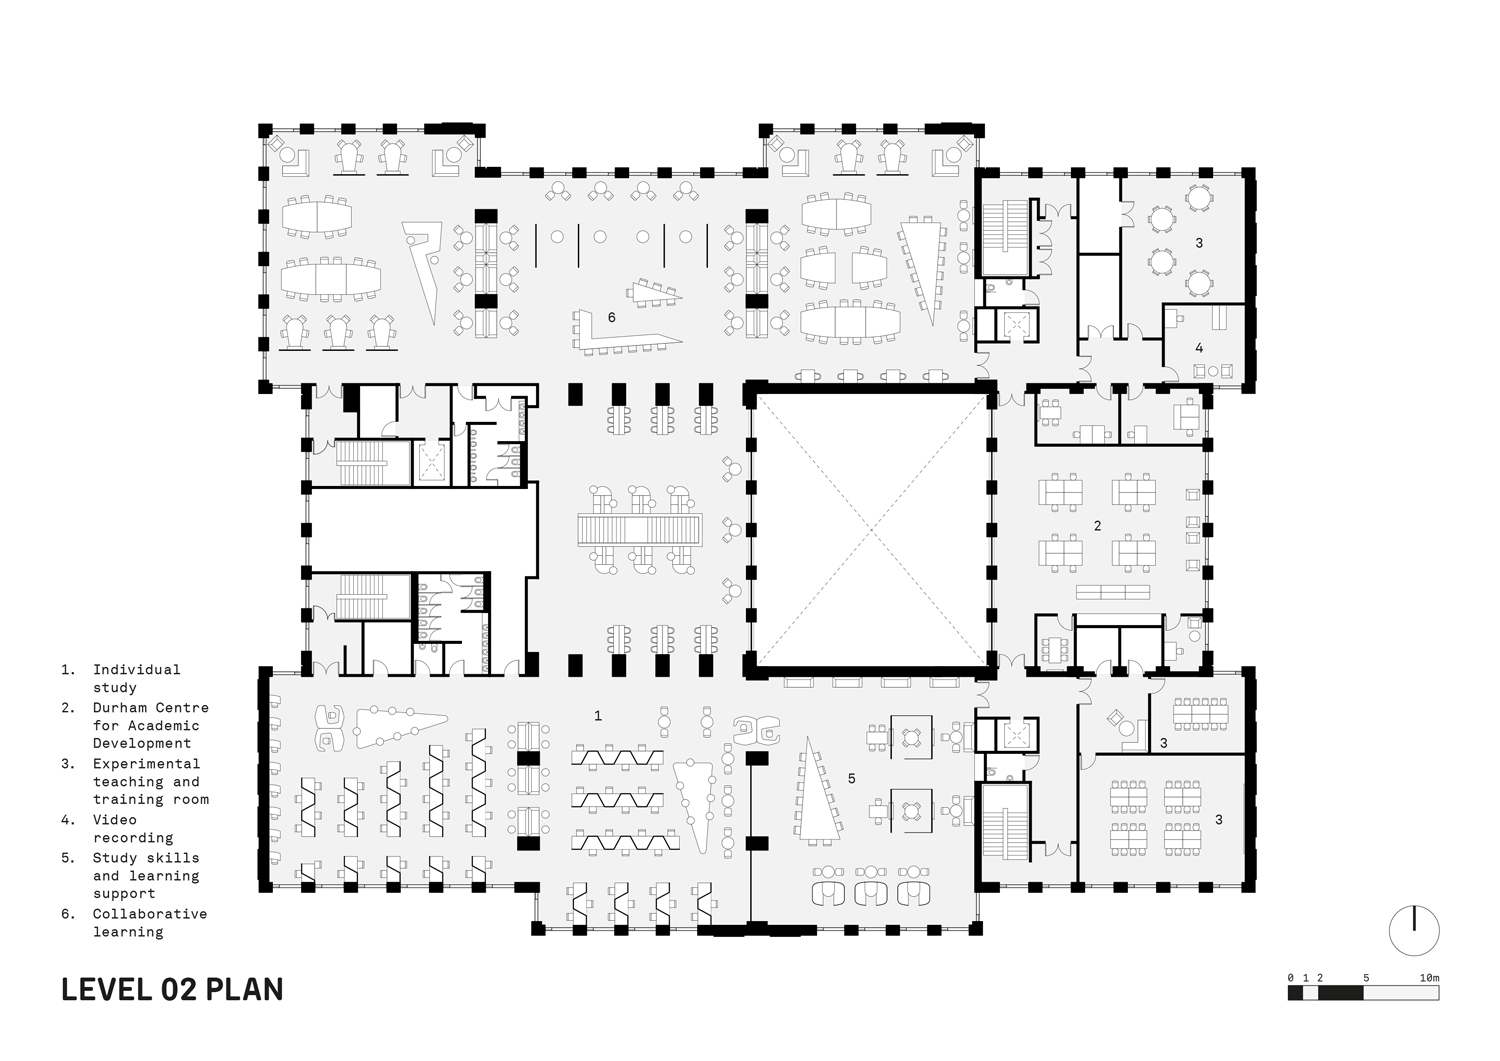 Level 02 Plan FaulknerBrowns Architects}